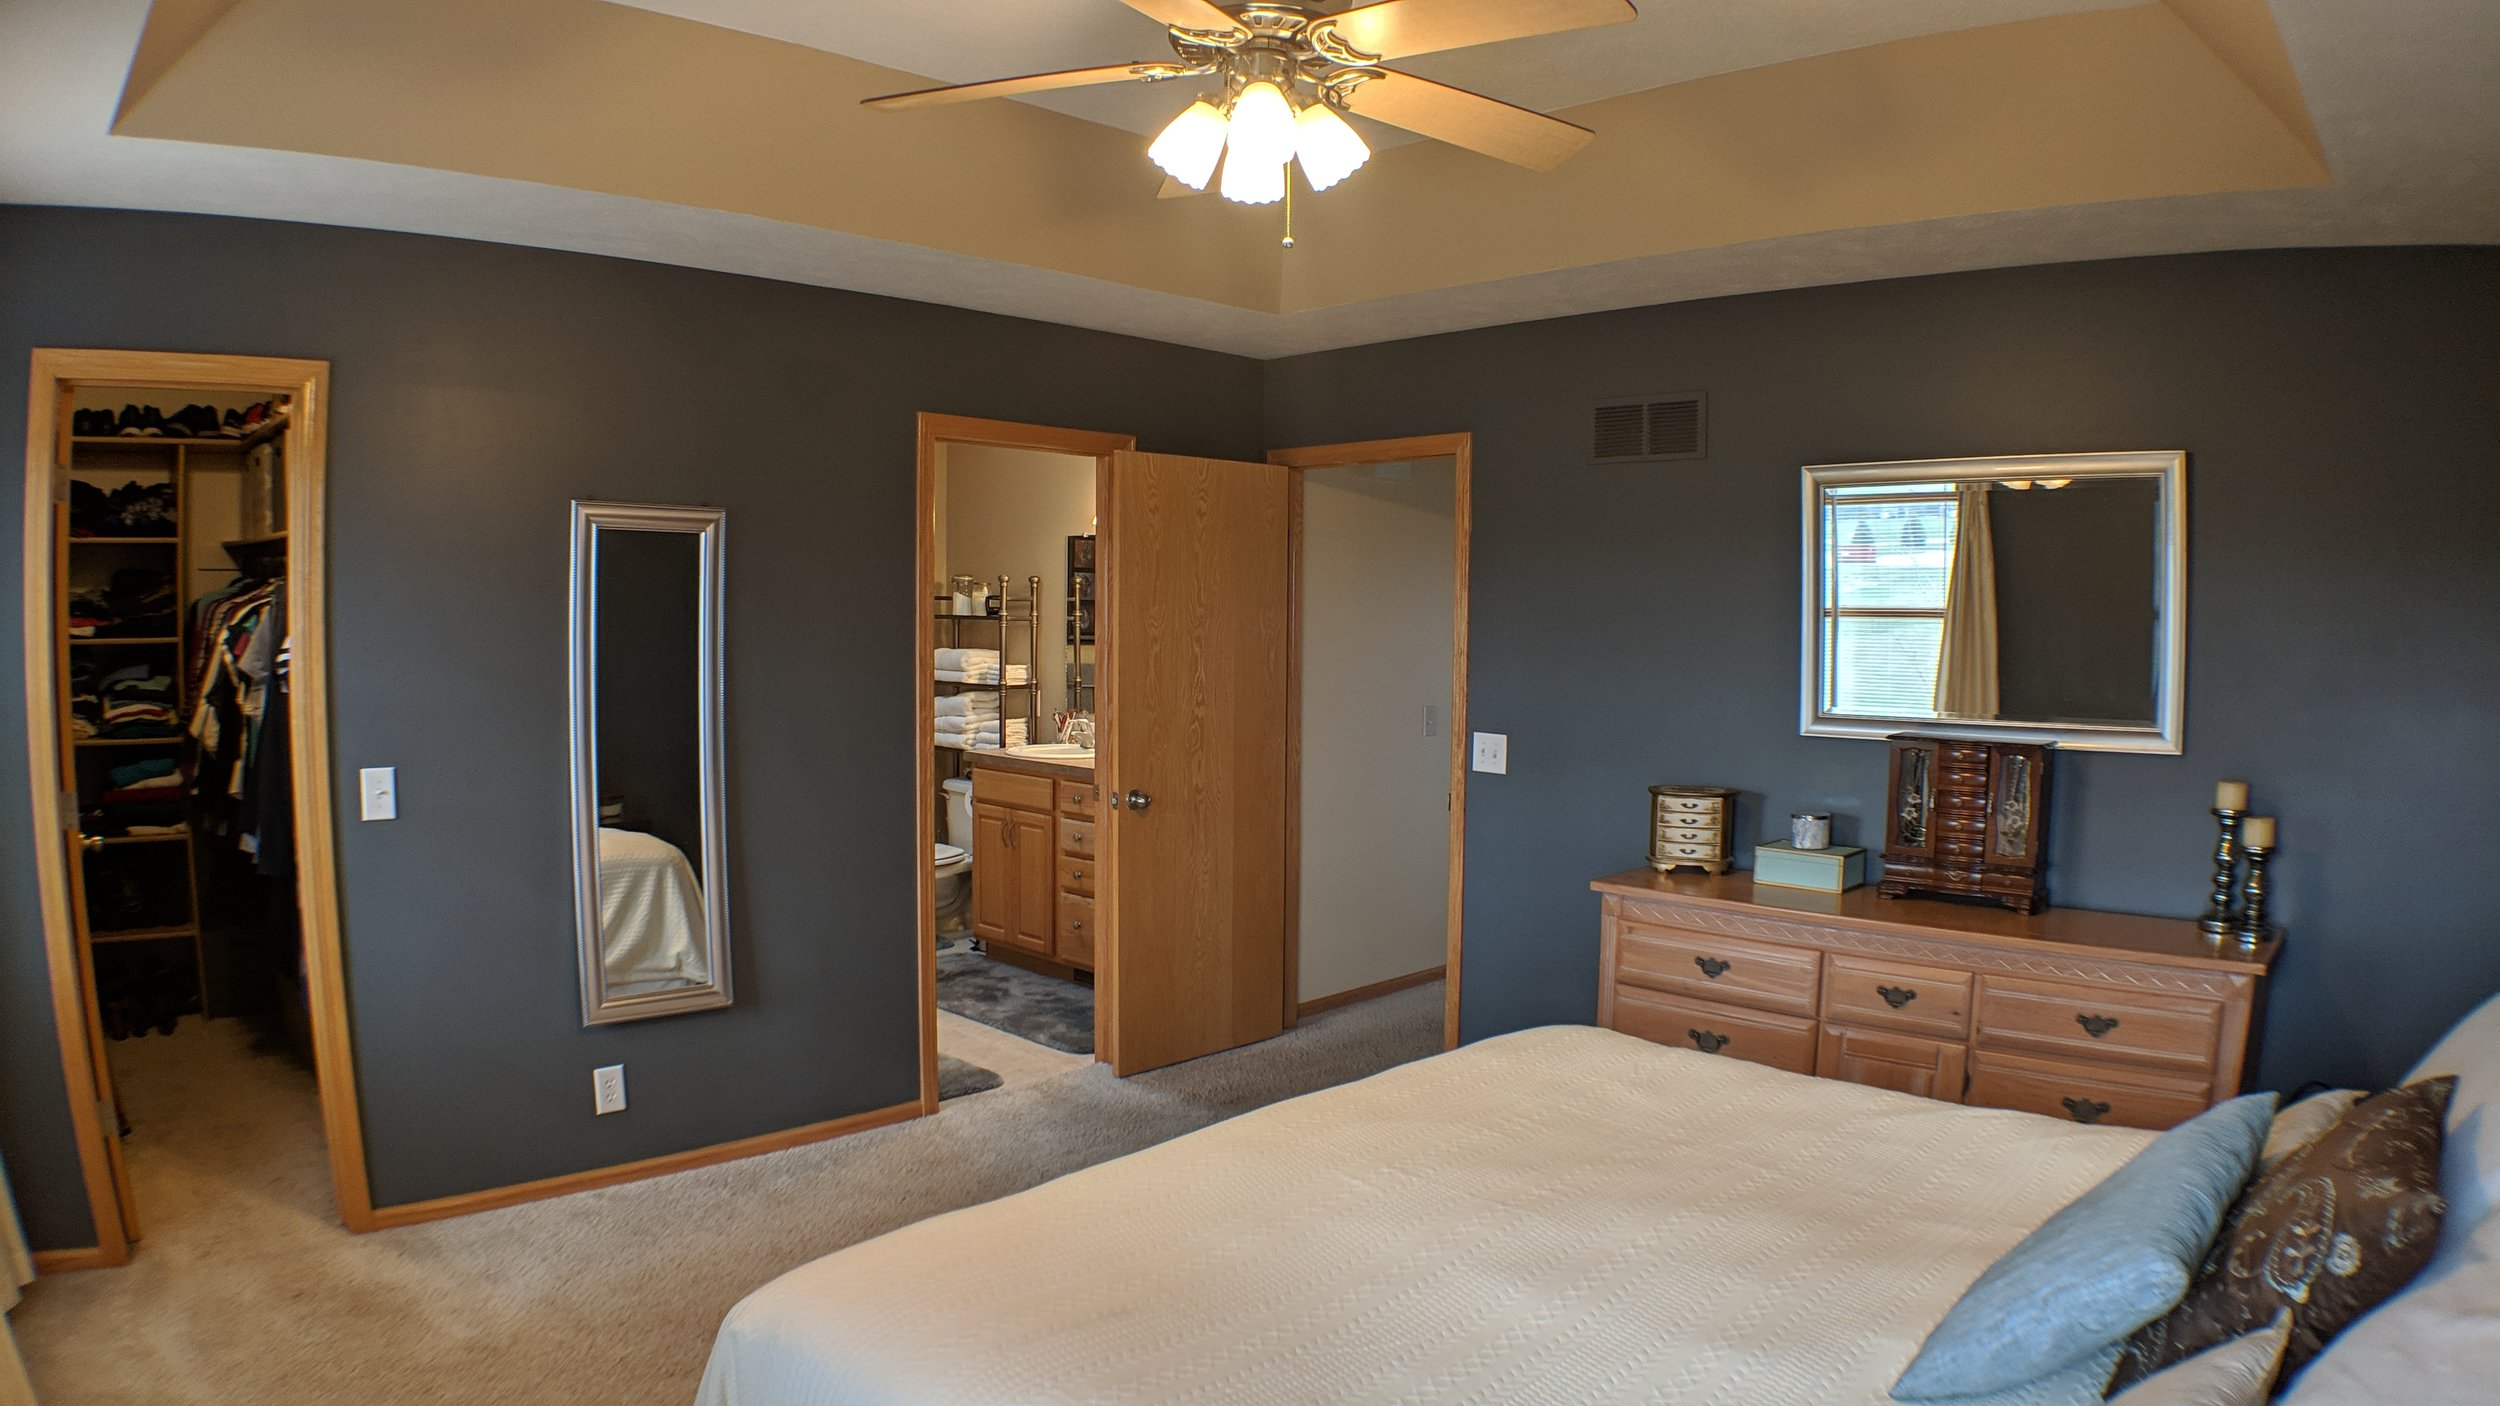 Large master suite with walk-in closet and double vanity.